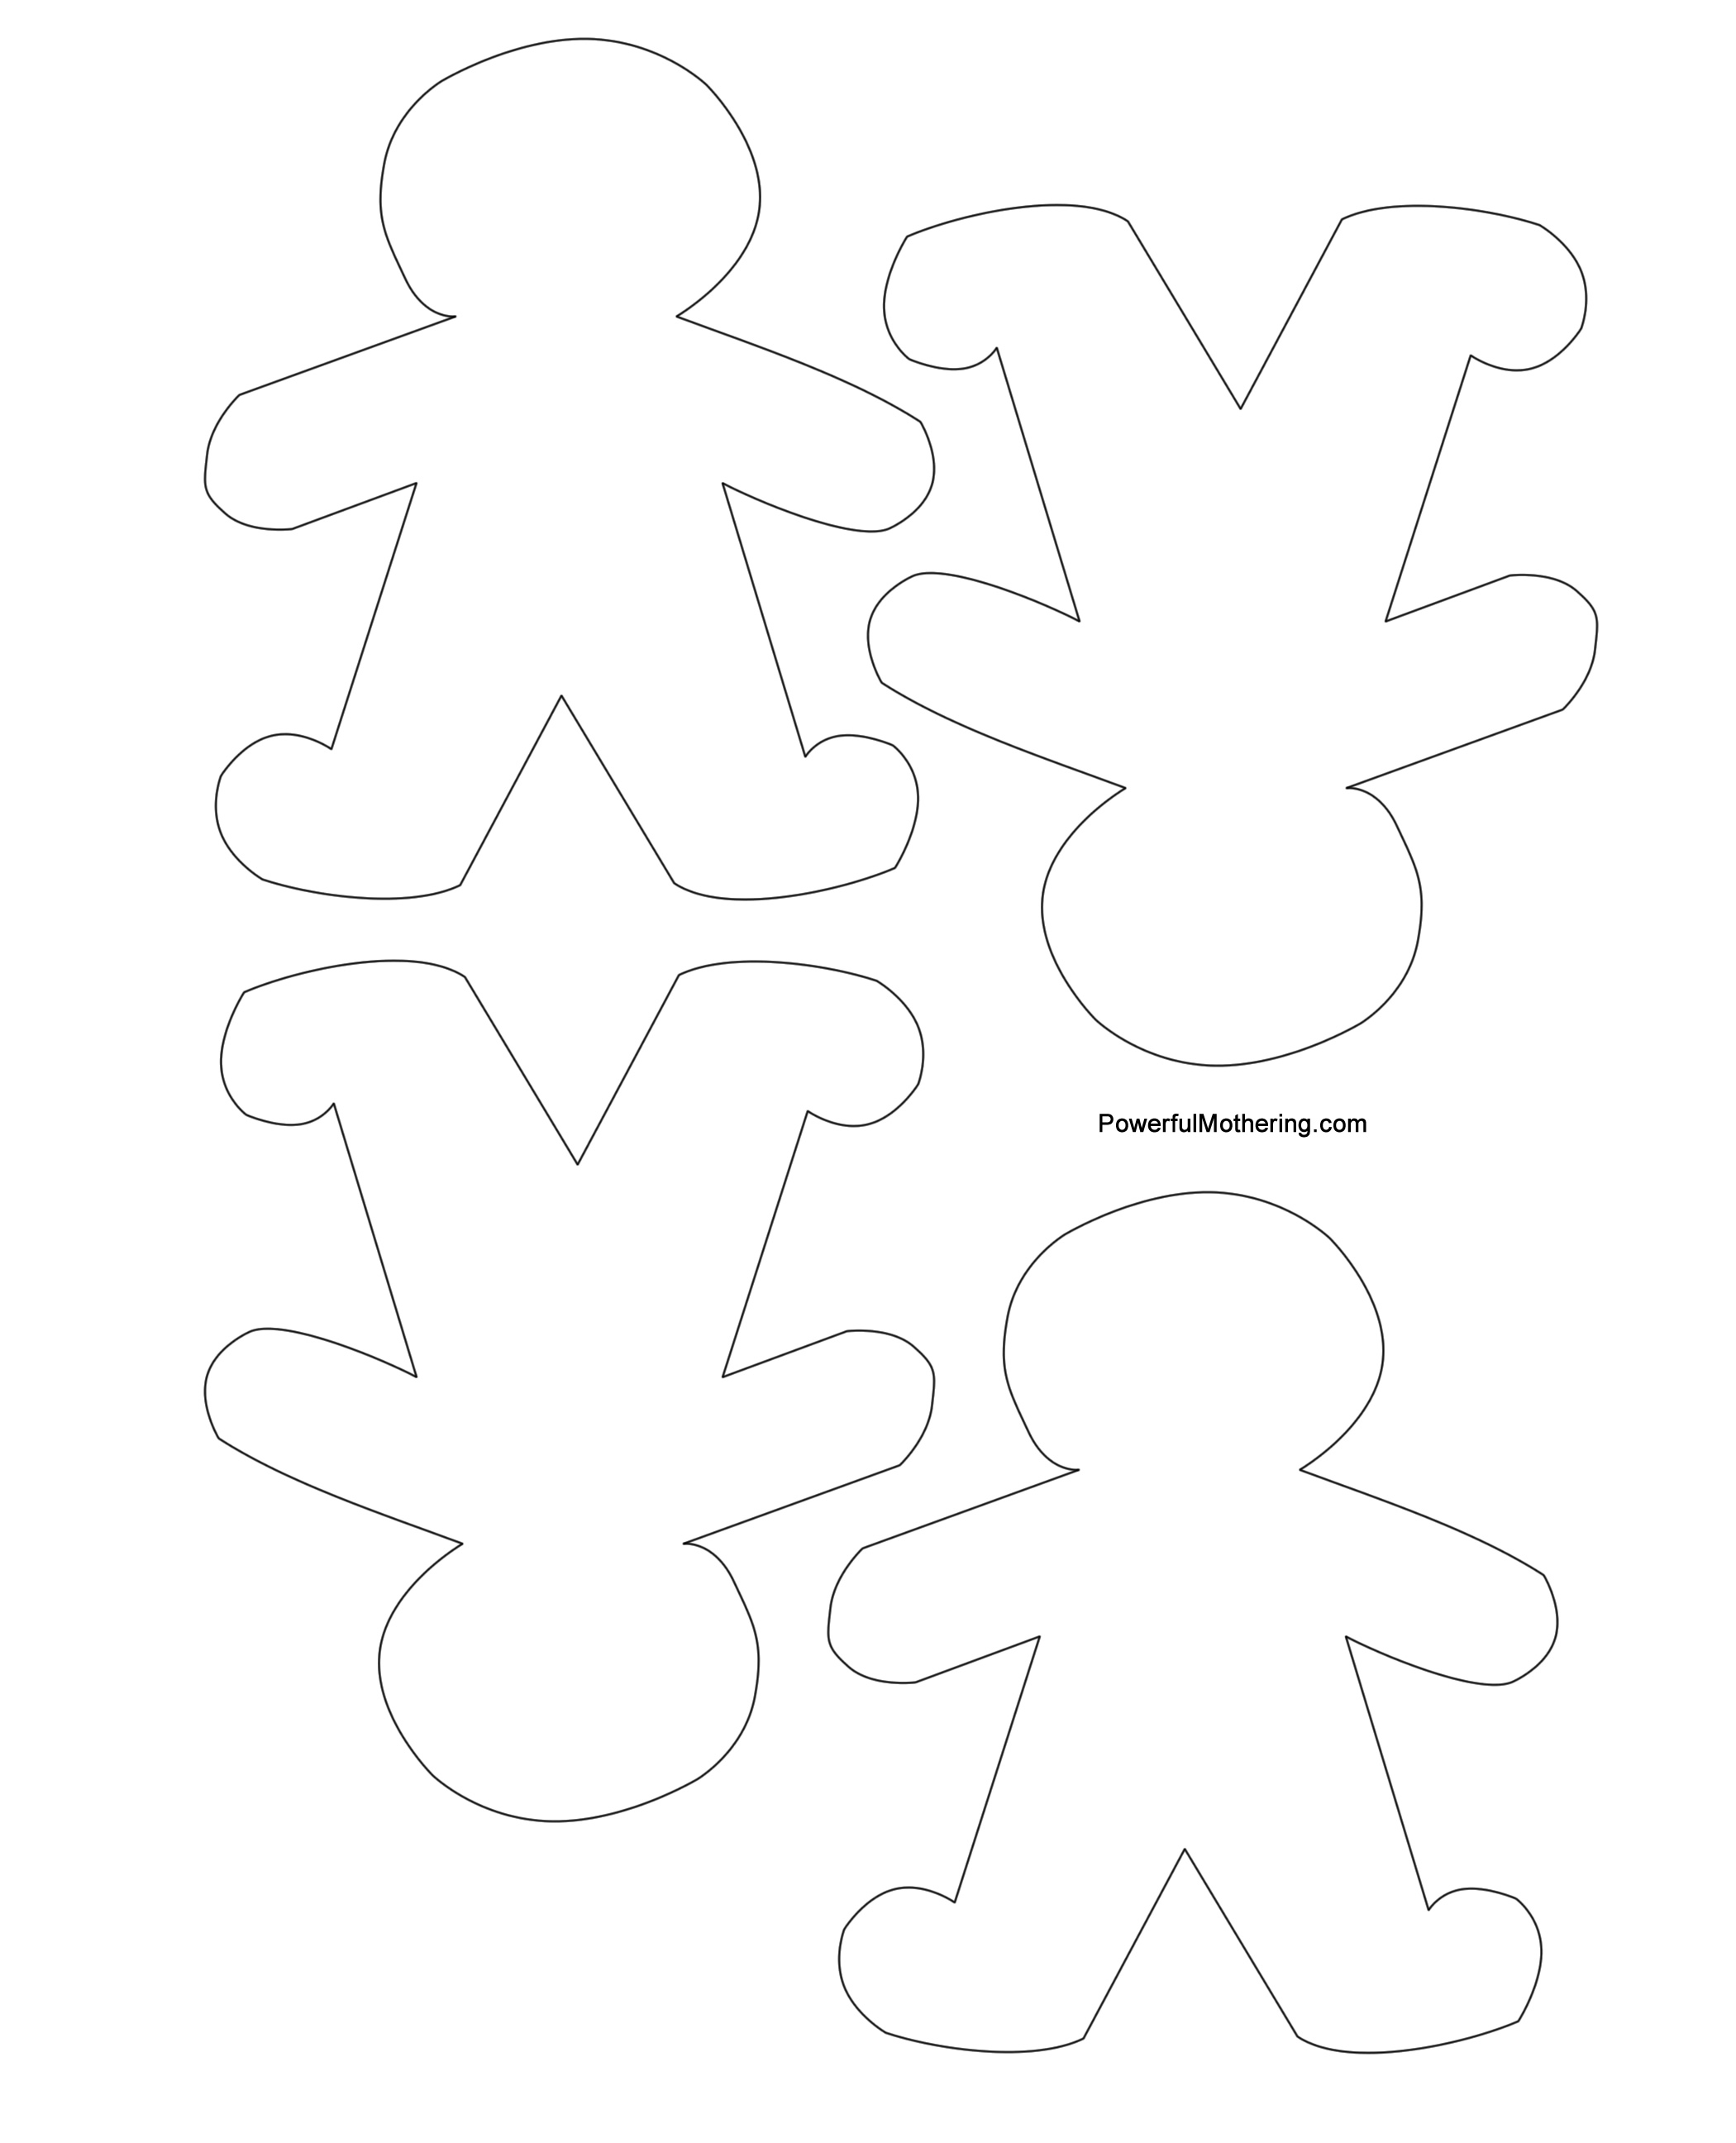 graphic regarding Free Printable Christmas Ornament Templates known as 30 Cheerful Printable Xmas Ornaments